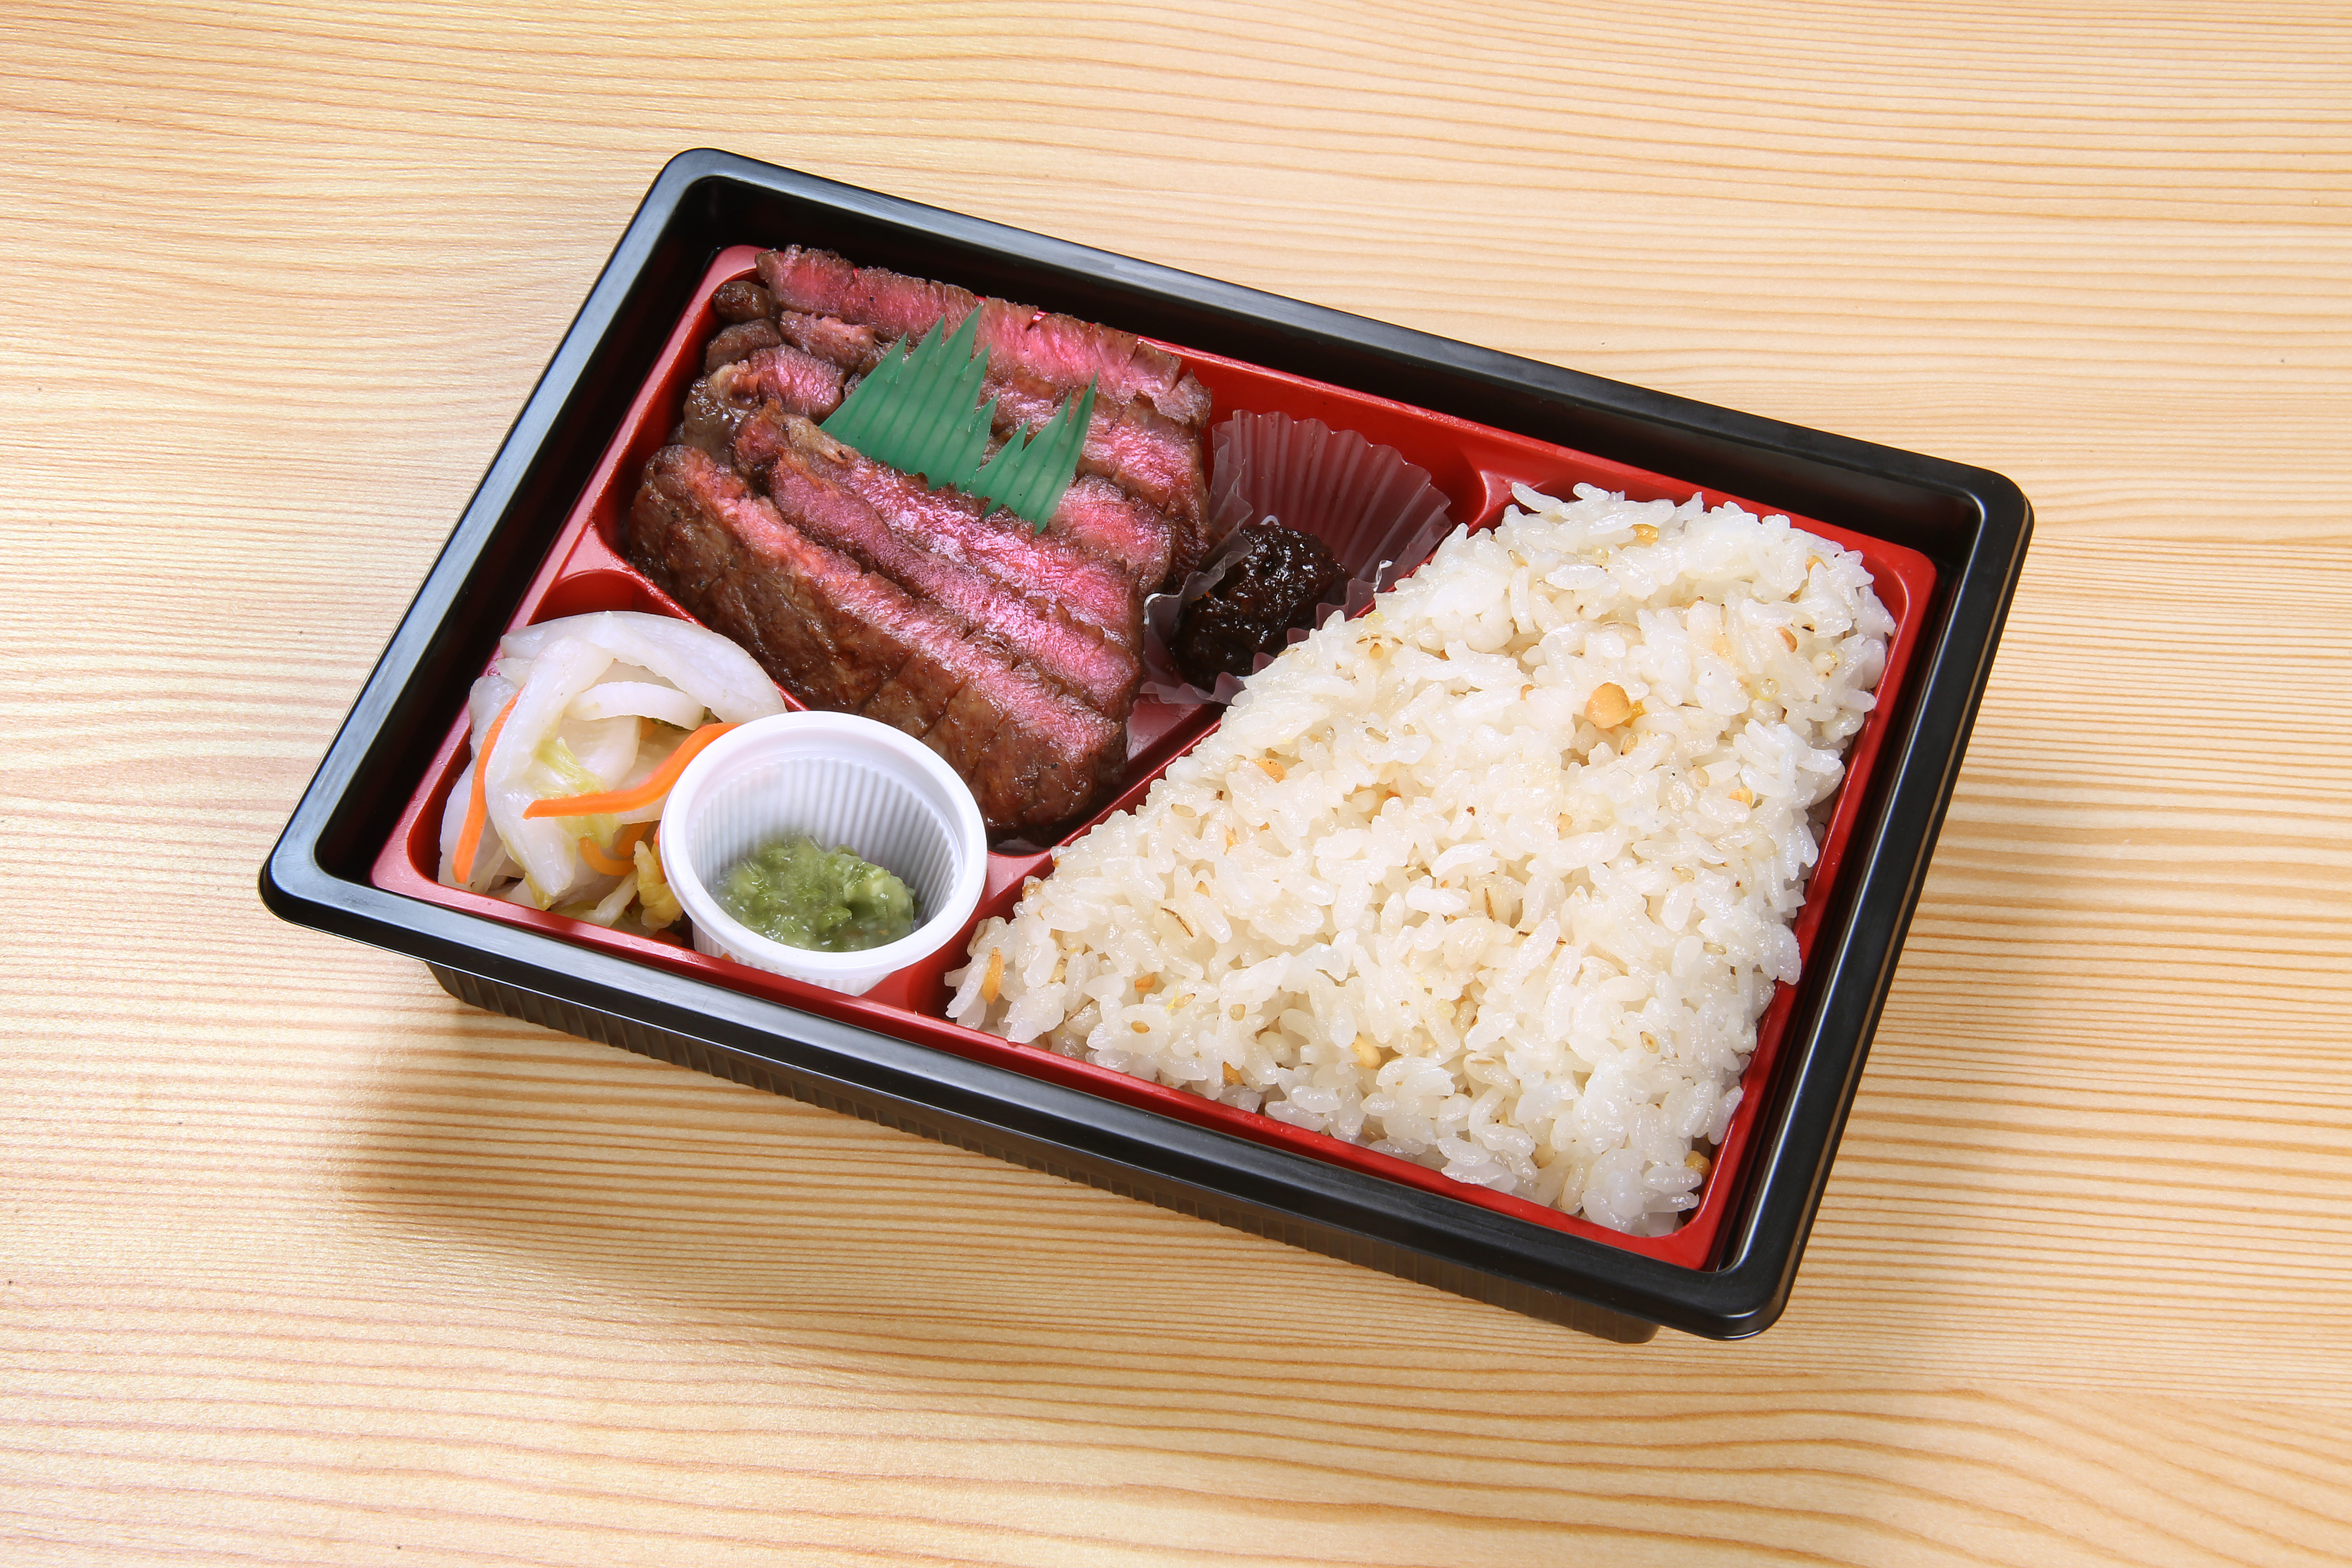 Seasonal beef tongue box lunch 1,300 (incl. tax)